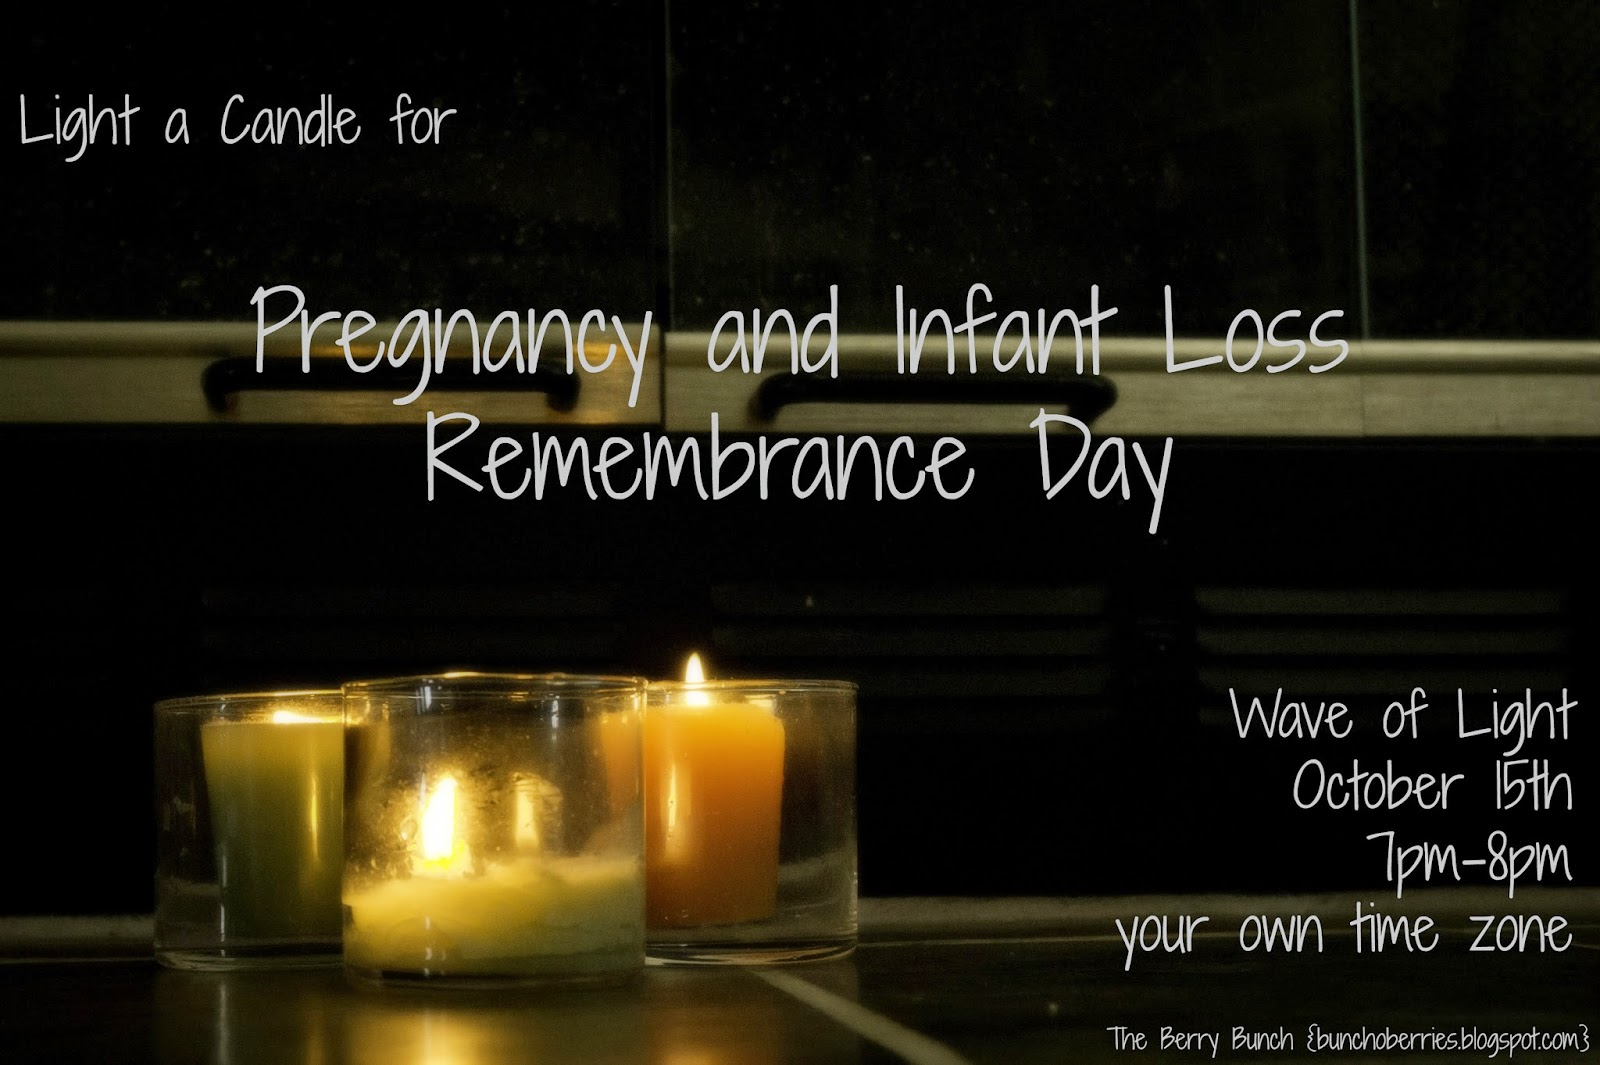 The Berry Bunch: Wave of Light: Pregnancy and Infant Loss Remembrance Day October 15th